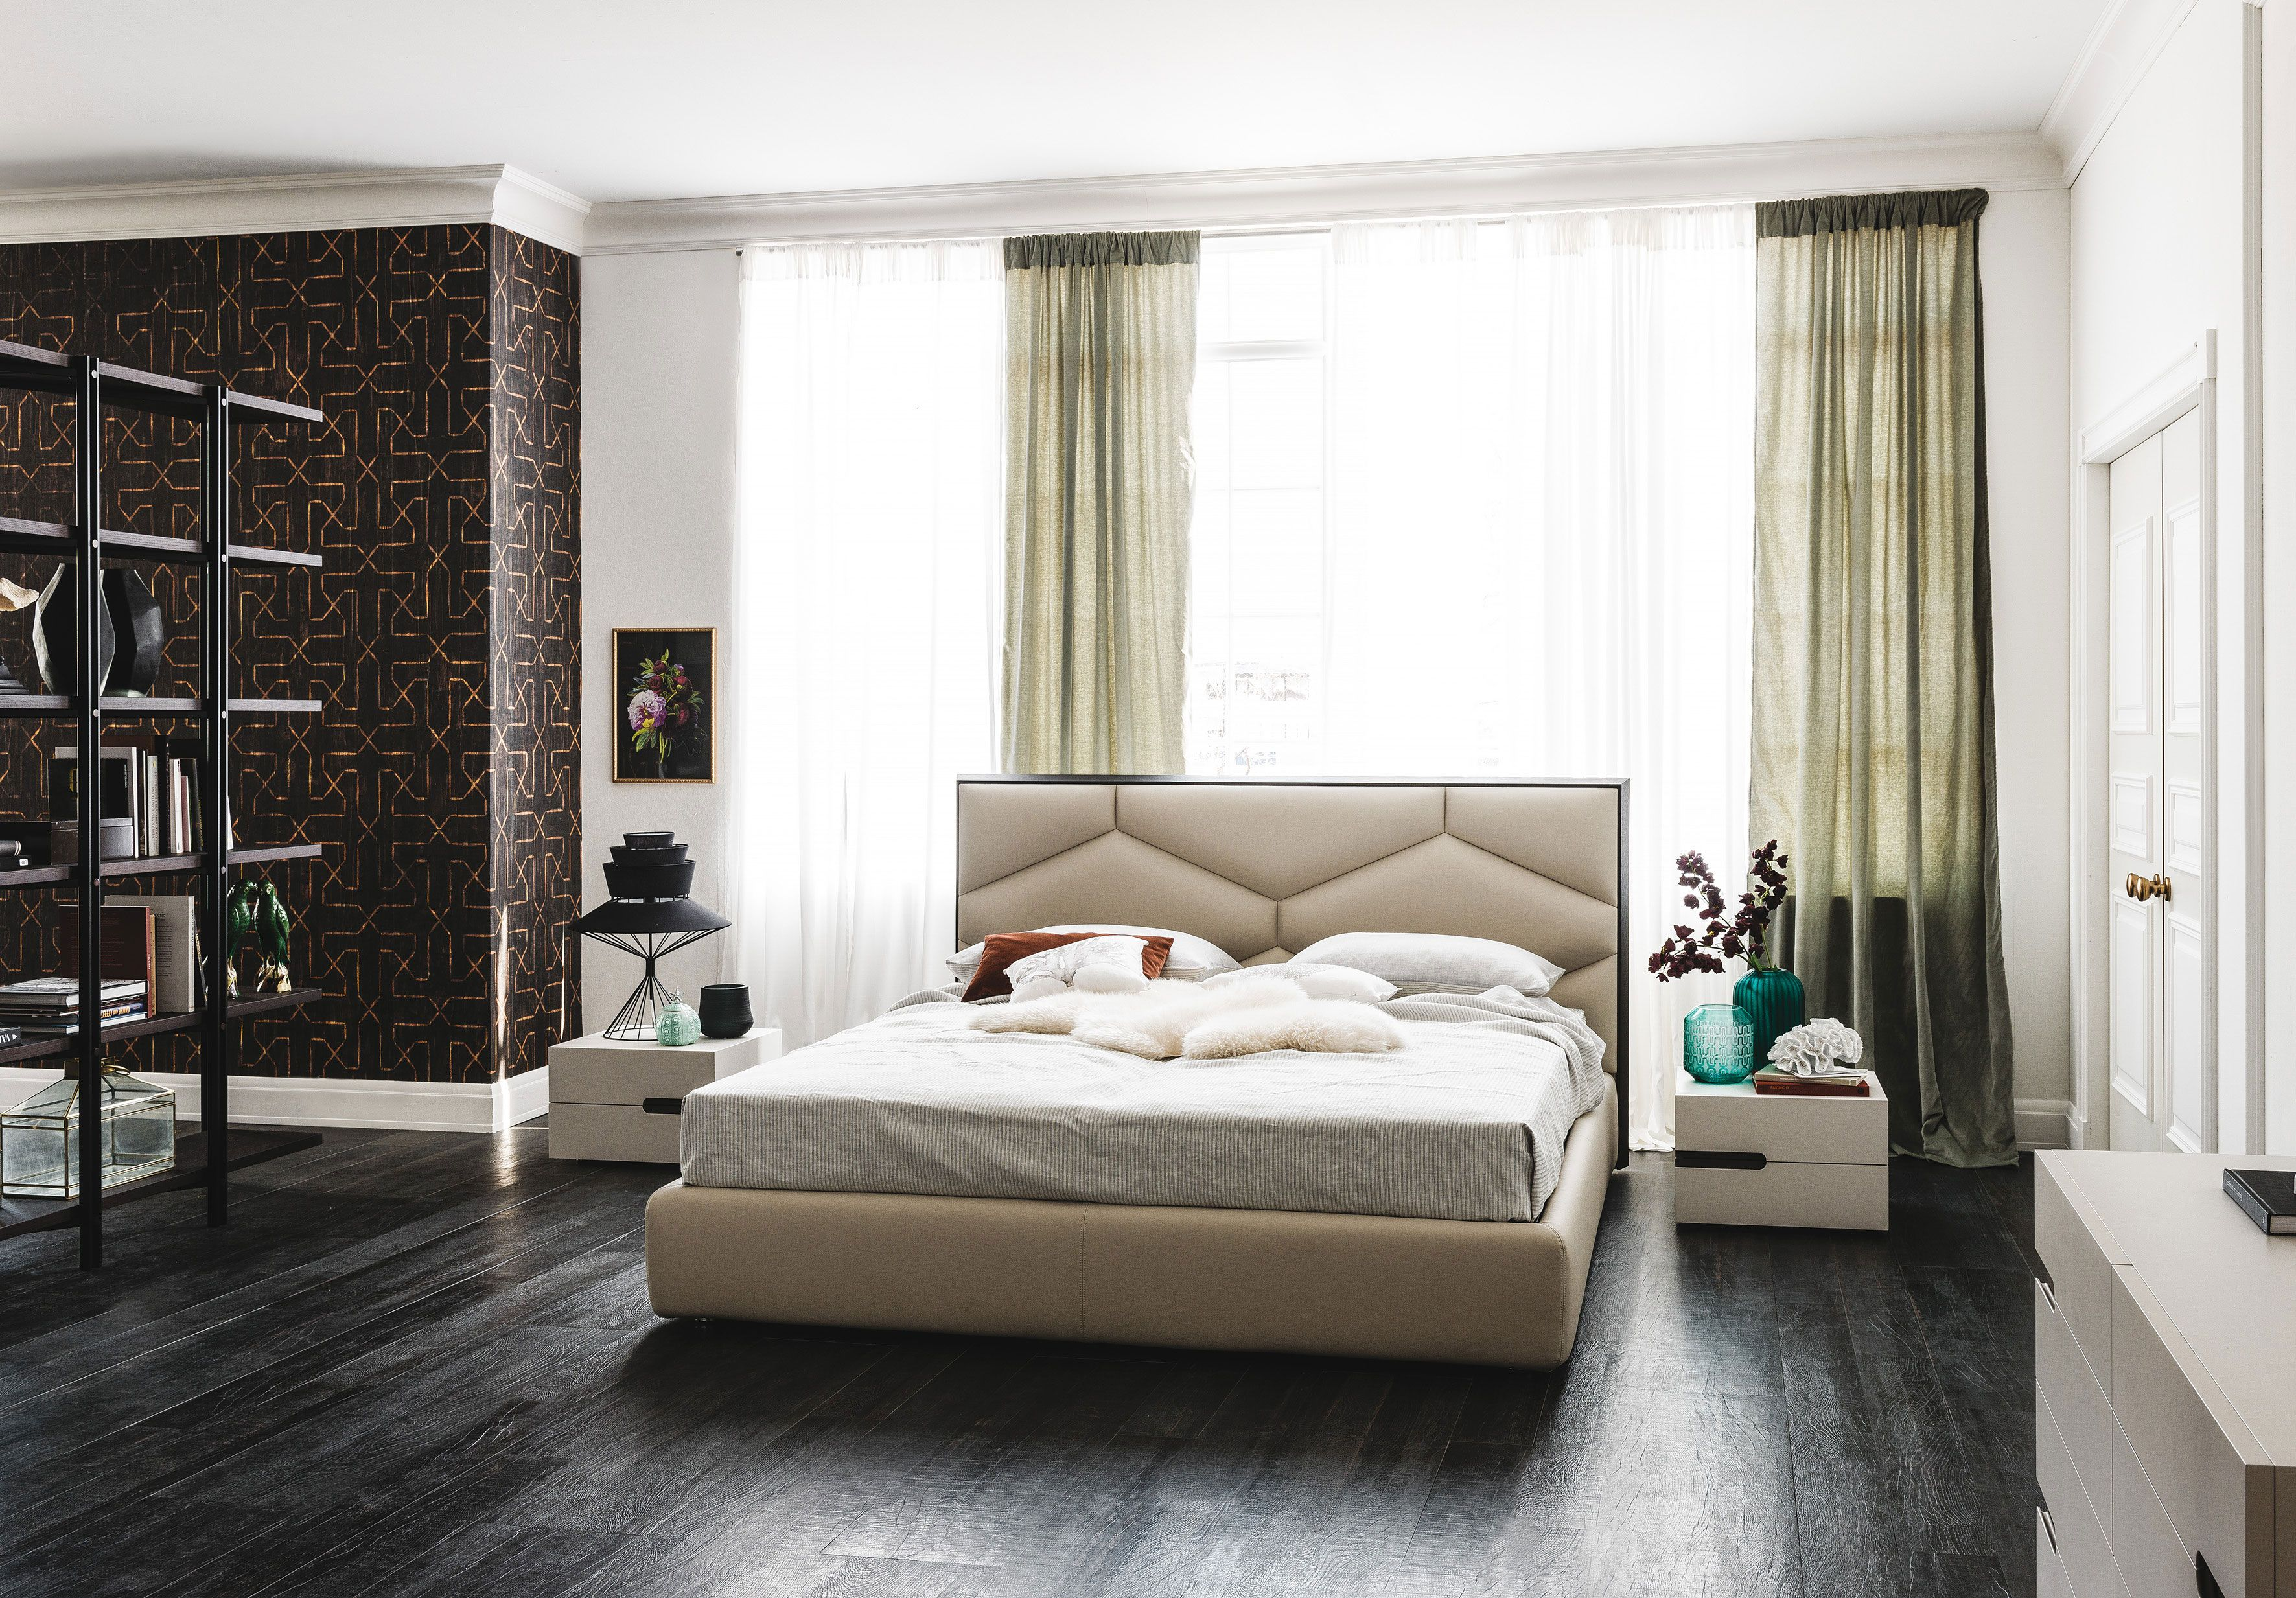 Edward Bed Cattelan Italia Bedroom Design Luxurious Bedrooms Contemporary Bed Luxury double bed room